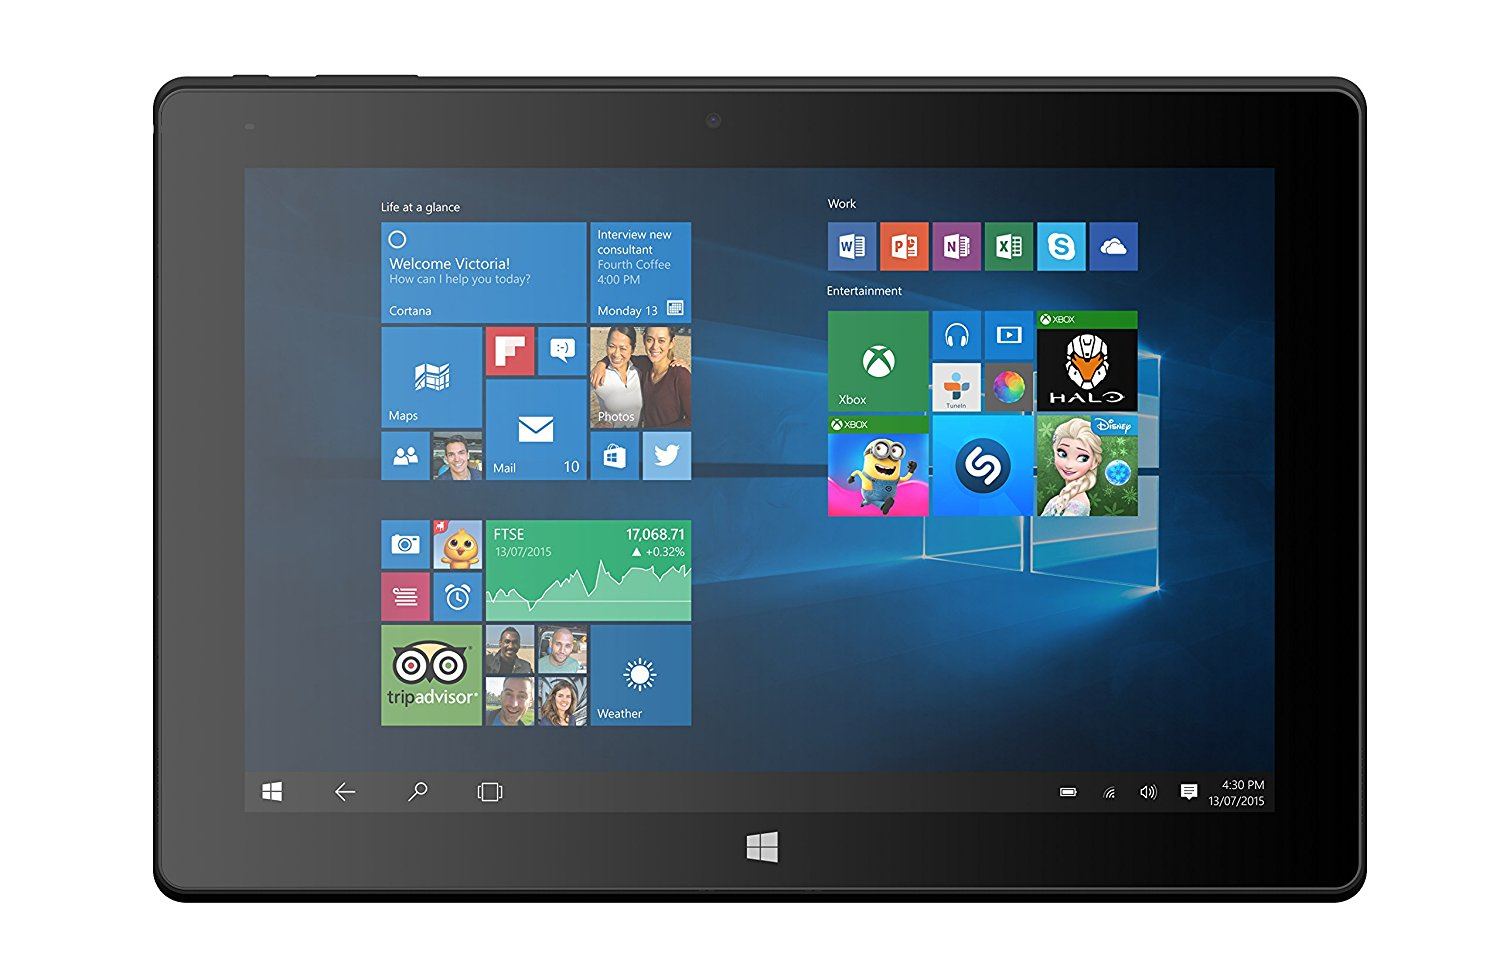 linx 10v32 10 1 tablette avec clavier intel atom x5 2 go ram 32gb hdd windows ebay. Black Bedroom Furniture Sets. Home Design Ideas